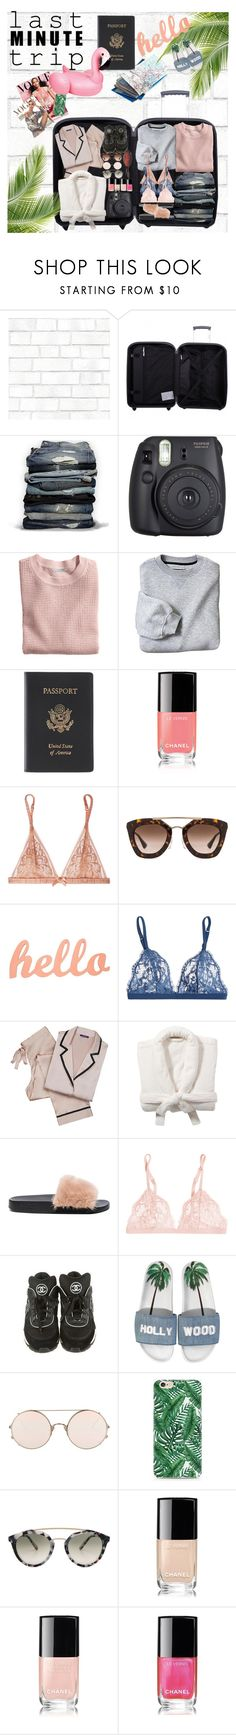 """Last minute trip...."" by sascha-haarup on Polyvore featuring Tempaper, Tripp, Hollister Co., Fuji, H&M, Royce Leather, Chanel, L'Agent By Agent Provocateur, Prada and La Perla"